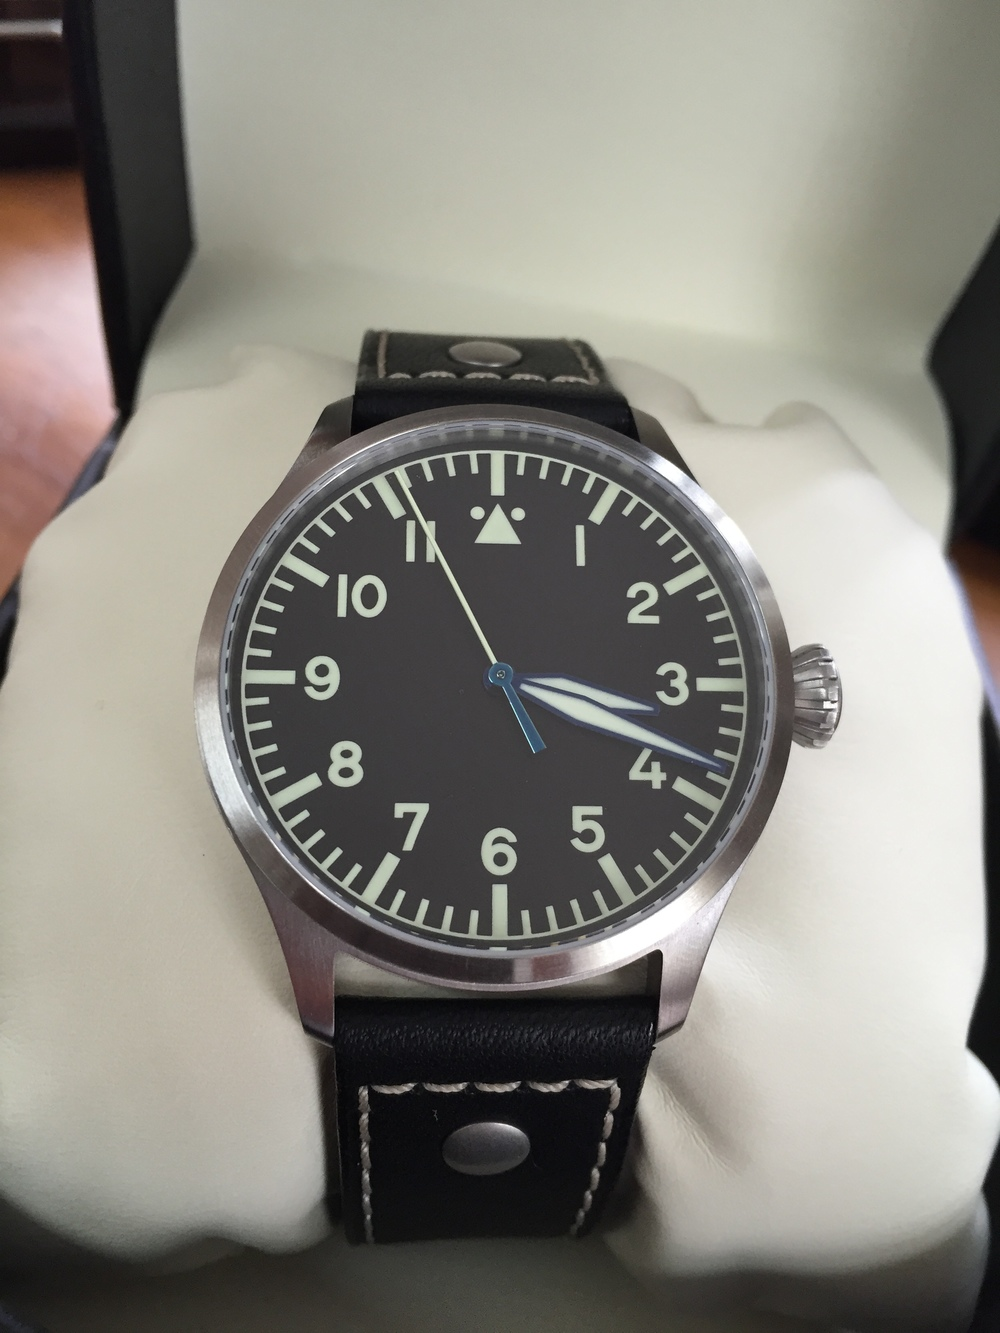 Archimede Pilot 39 H Automatic B-Watch